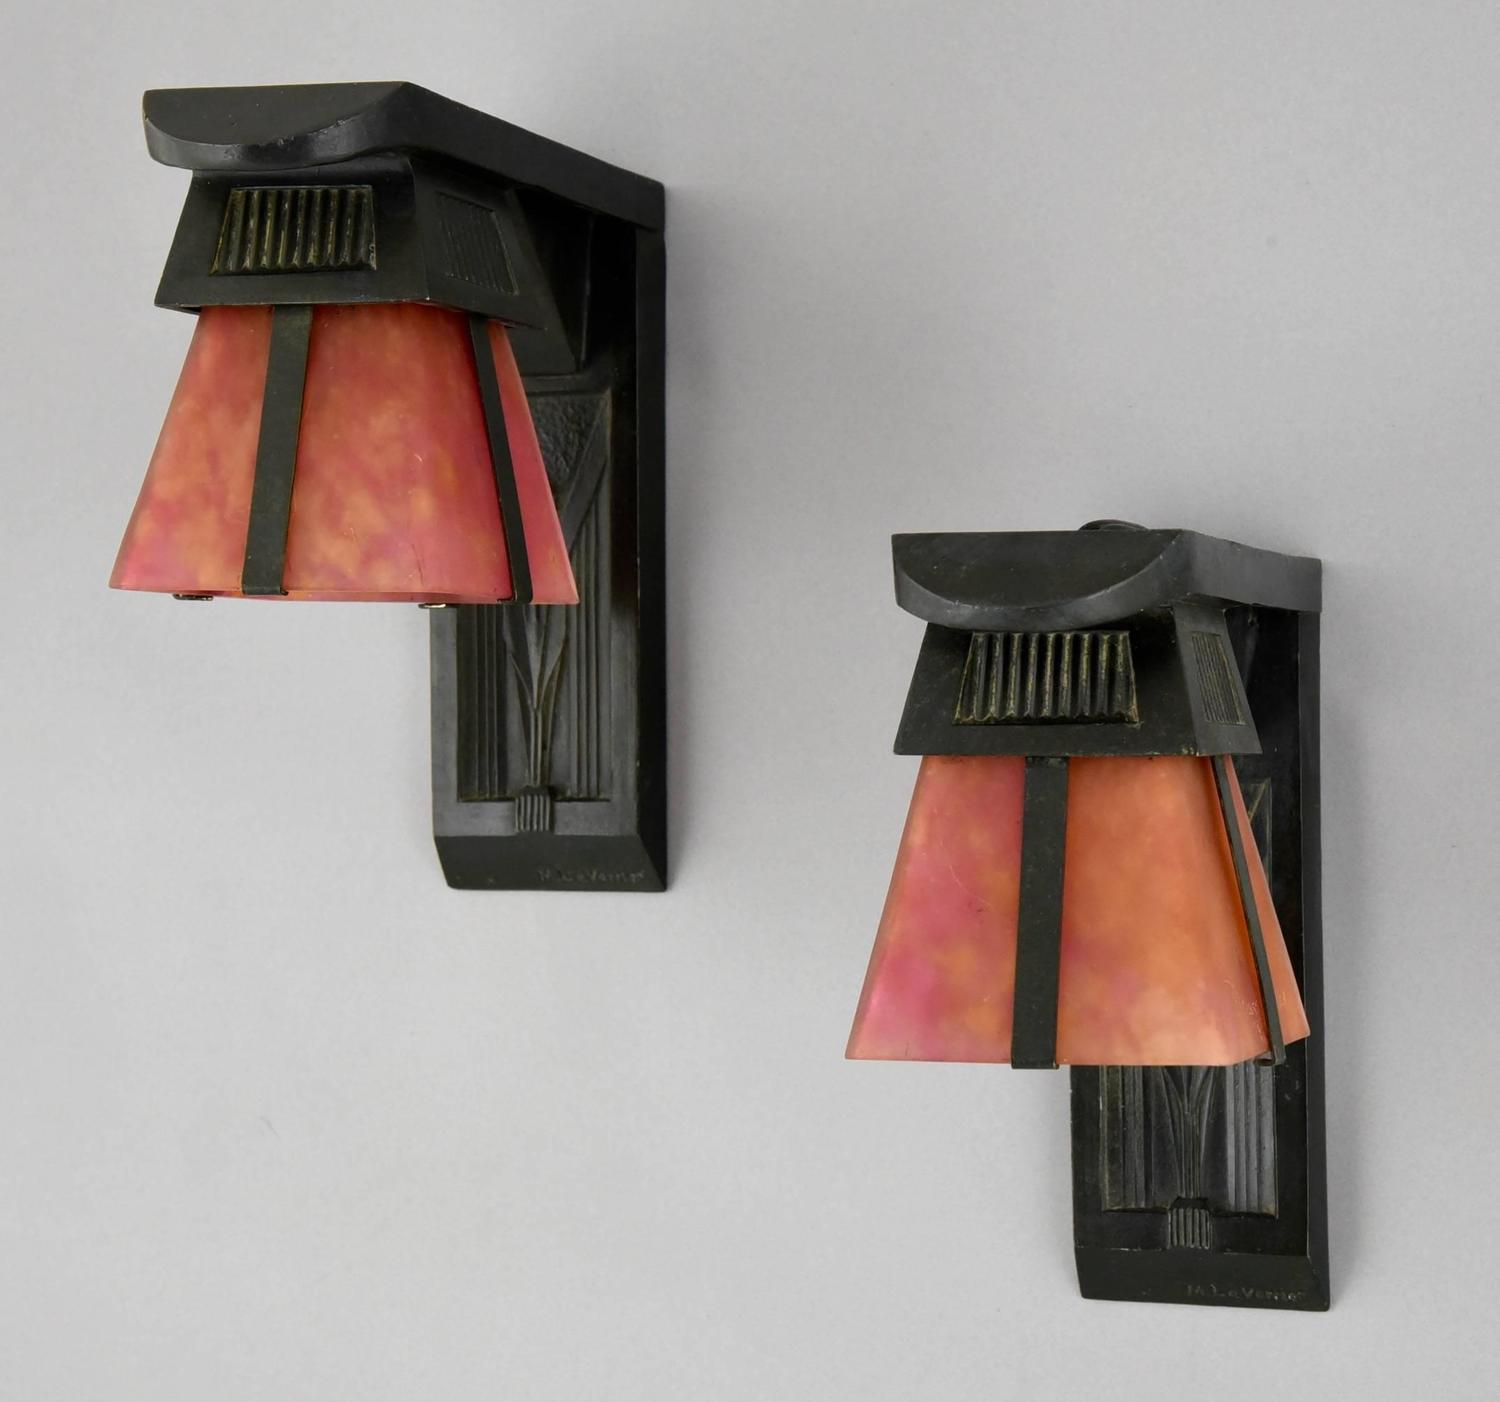 Wall Deco With Lights : Max Le Verrier and Daum Art Deco Wall Lights, Appliques with Birds, 1930 at 1stdibs